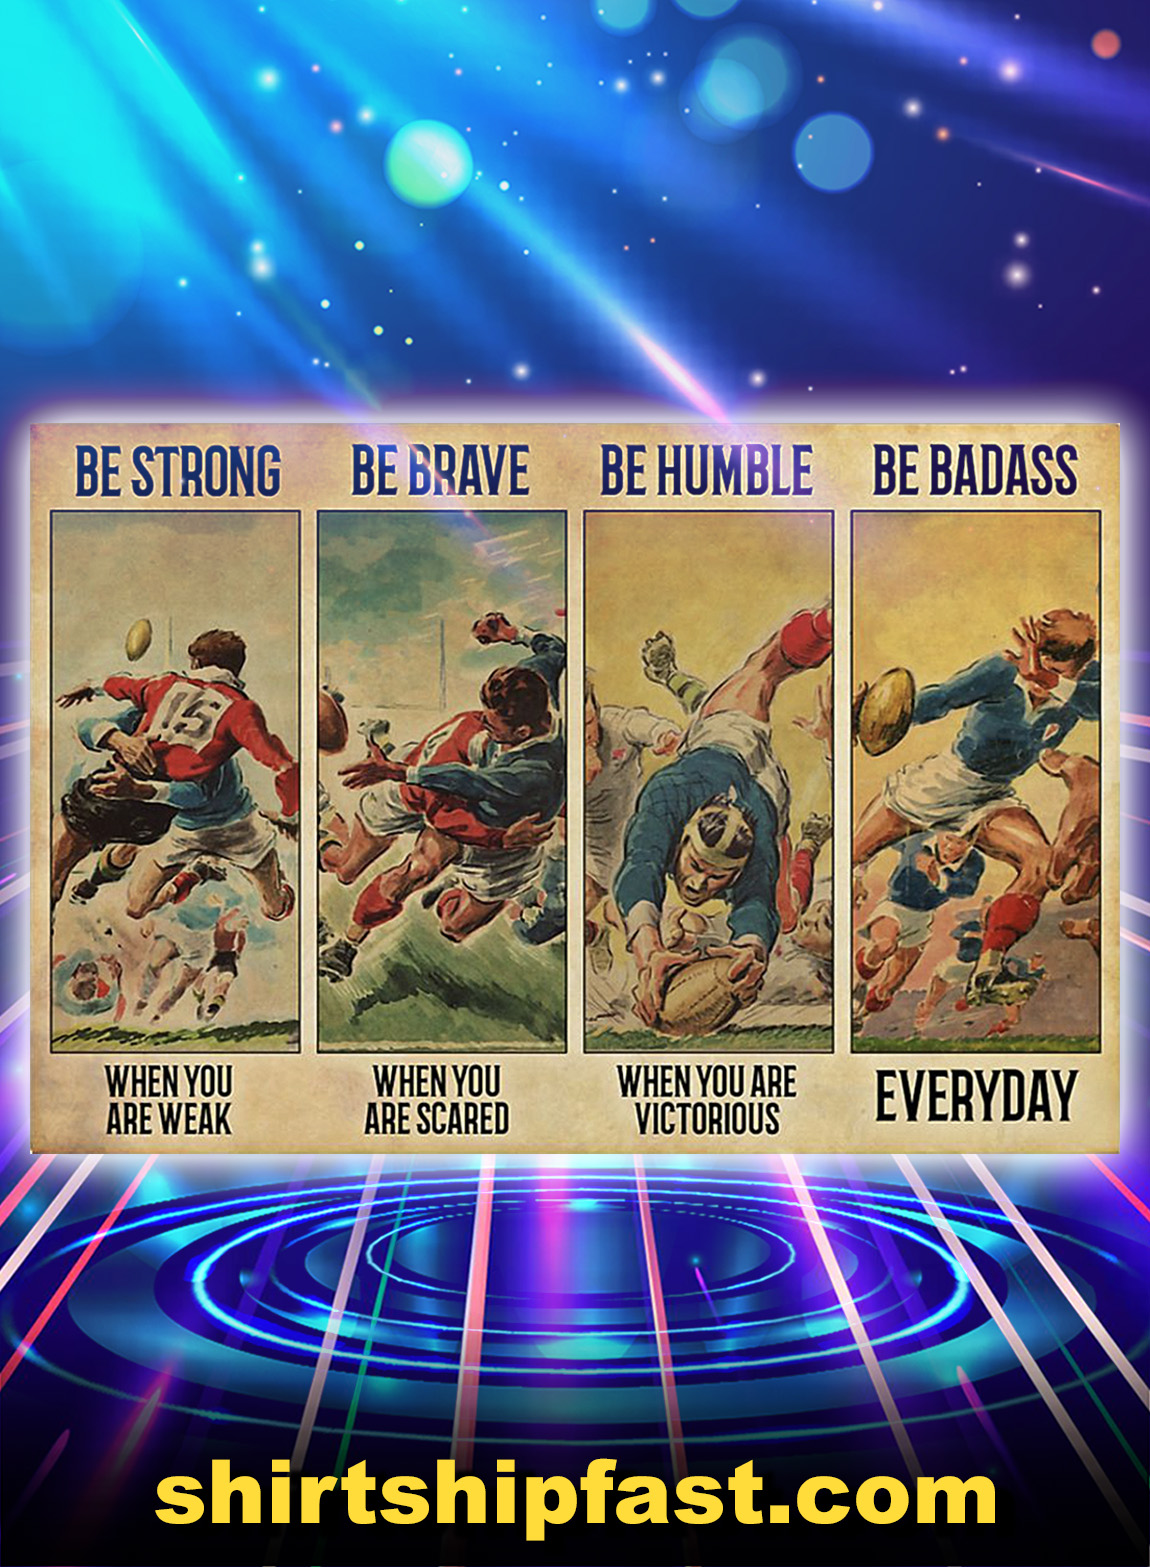 Be strong be brave be humble be badass Rugby poster - A2